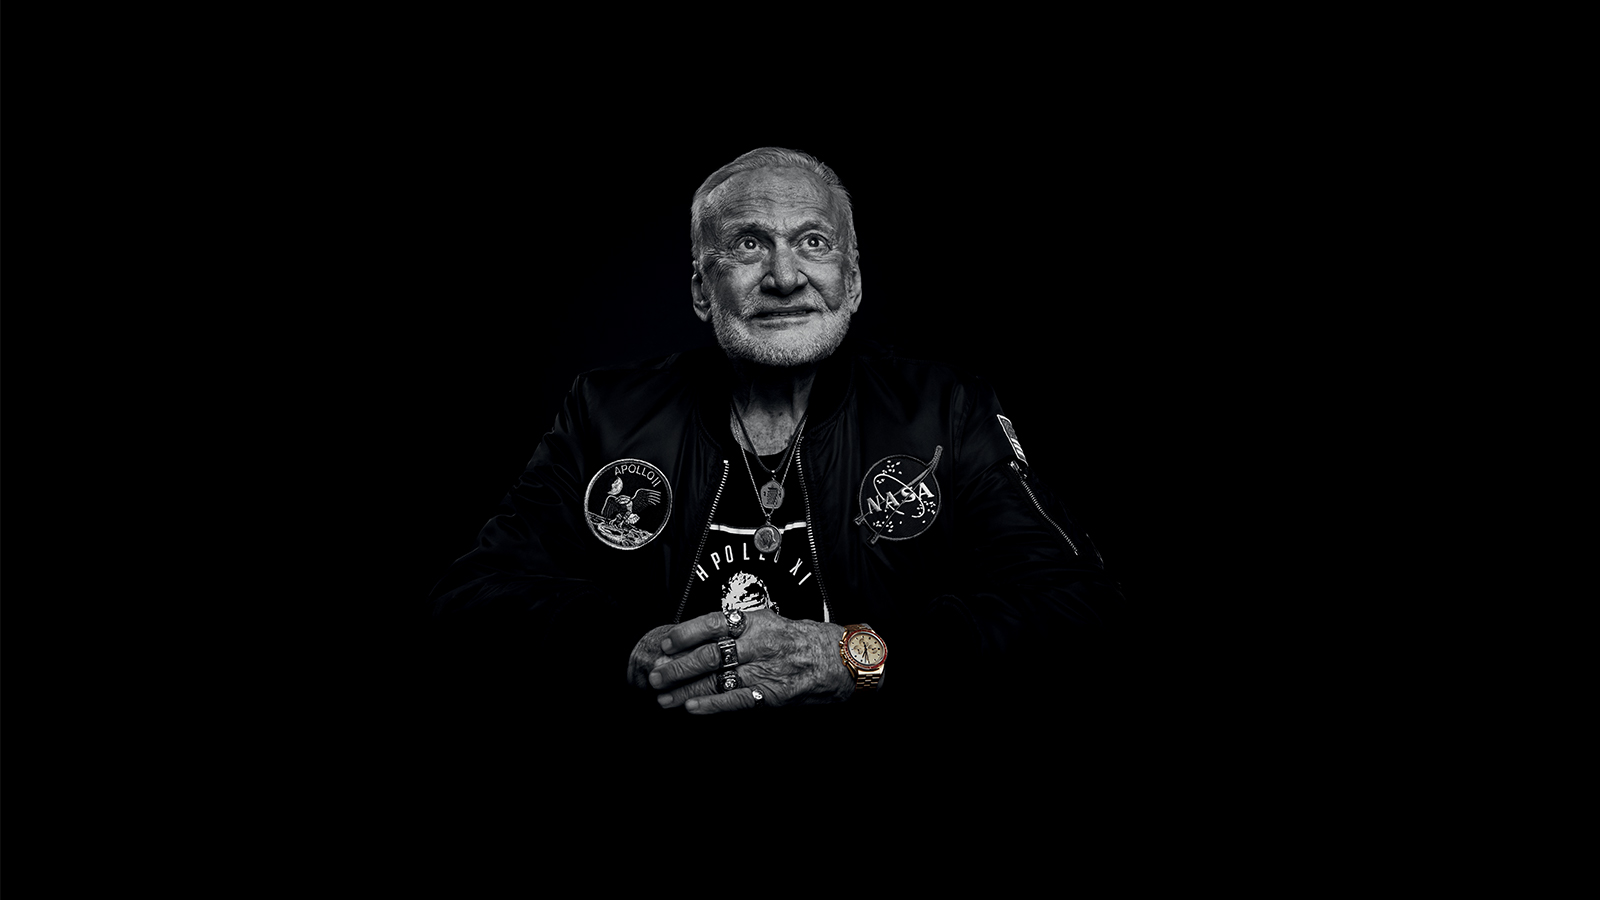 Buzz Aldrin wears Speedmaster Moonwatch 50th anniversary limited edition